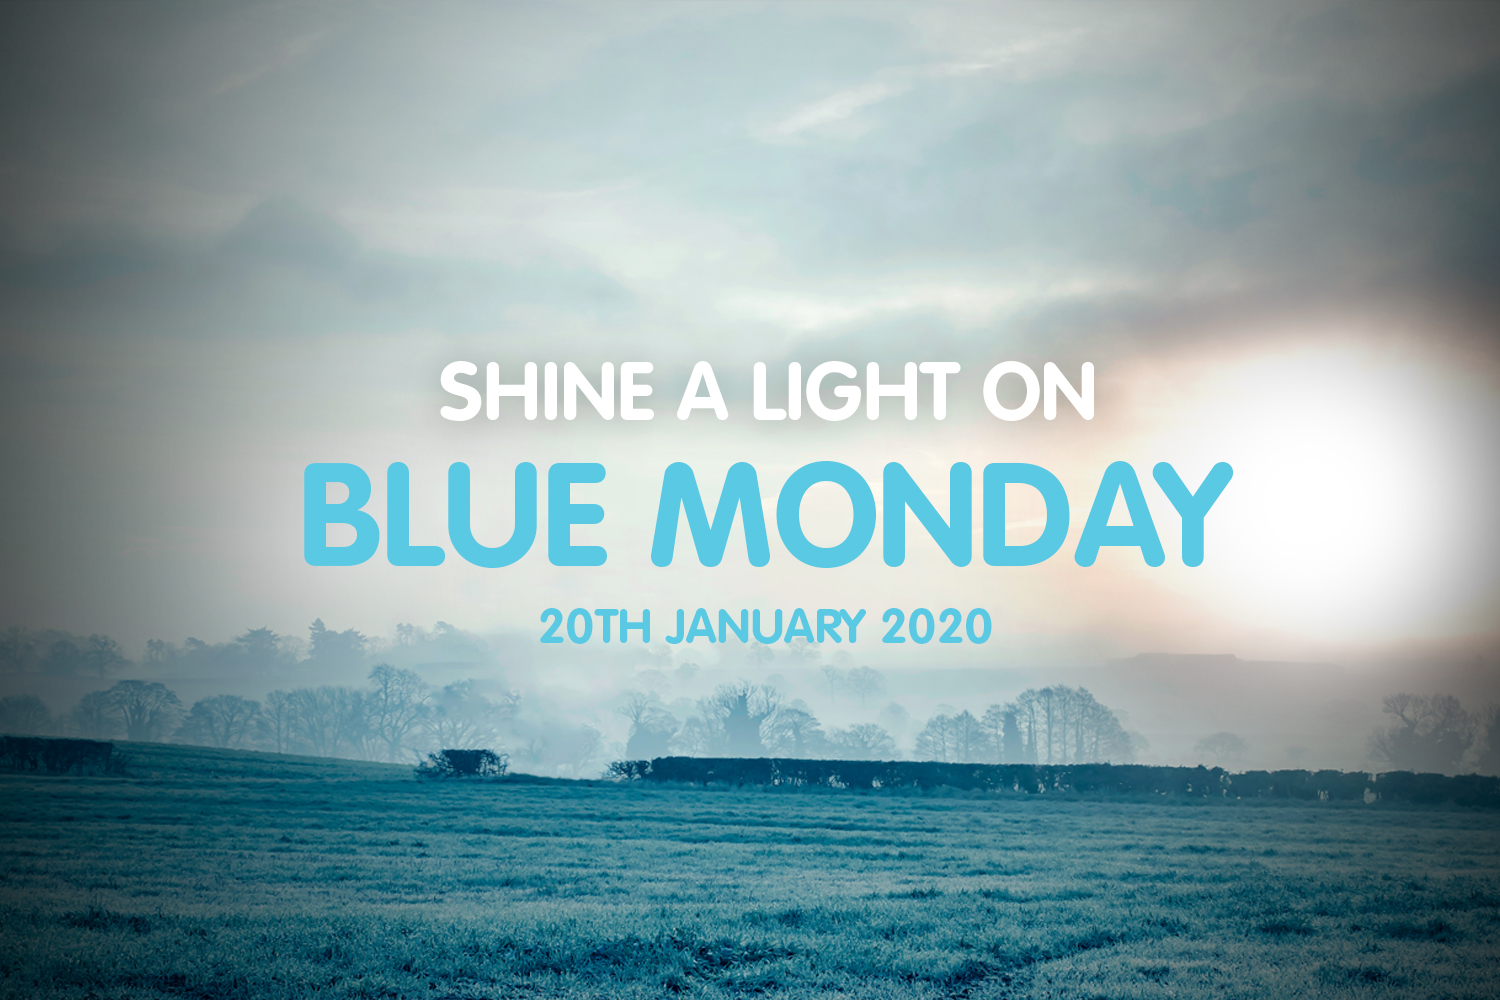 Blue Monday shouldn't be depressing!